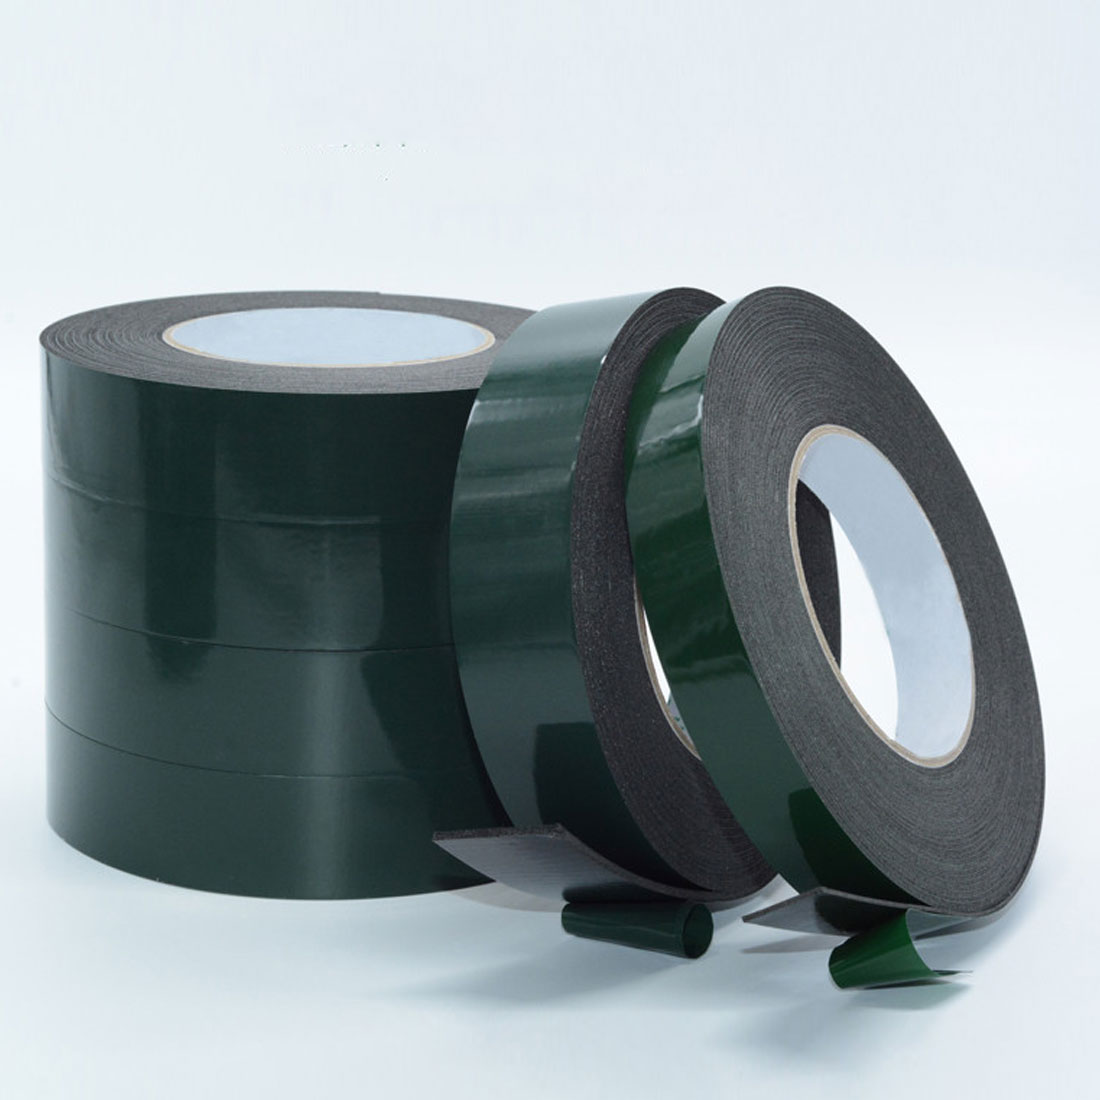 New 1 Pc 10m Length Strong Adhesive Waterproof Double Sided Tape High Quality 10mm Width Foam Green Tape Trim Home Car